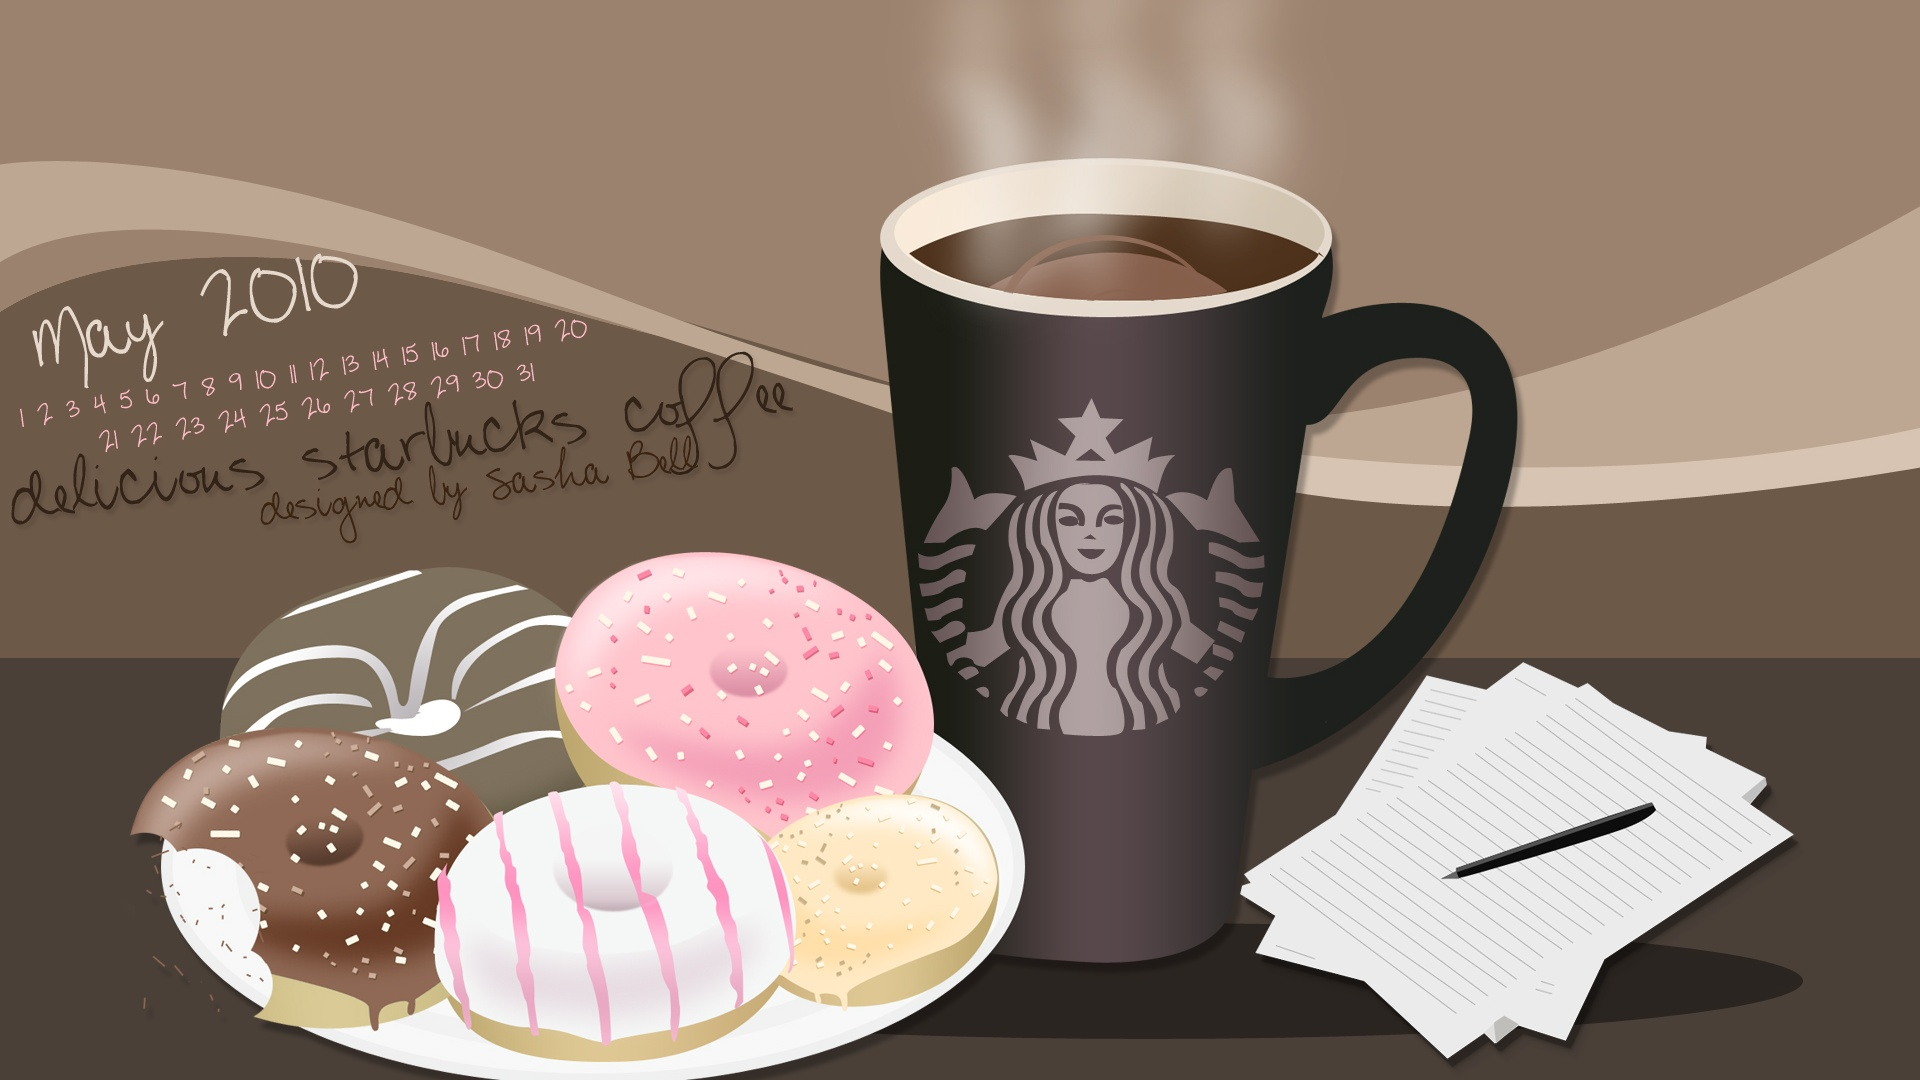 1920x1080 Starbucks coffee and donuts